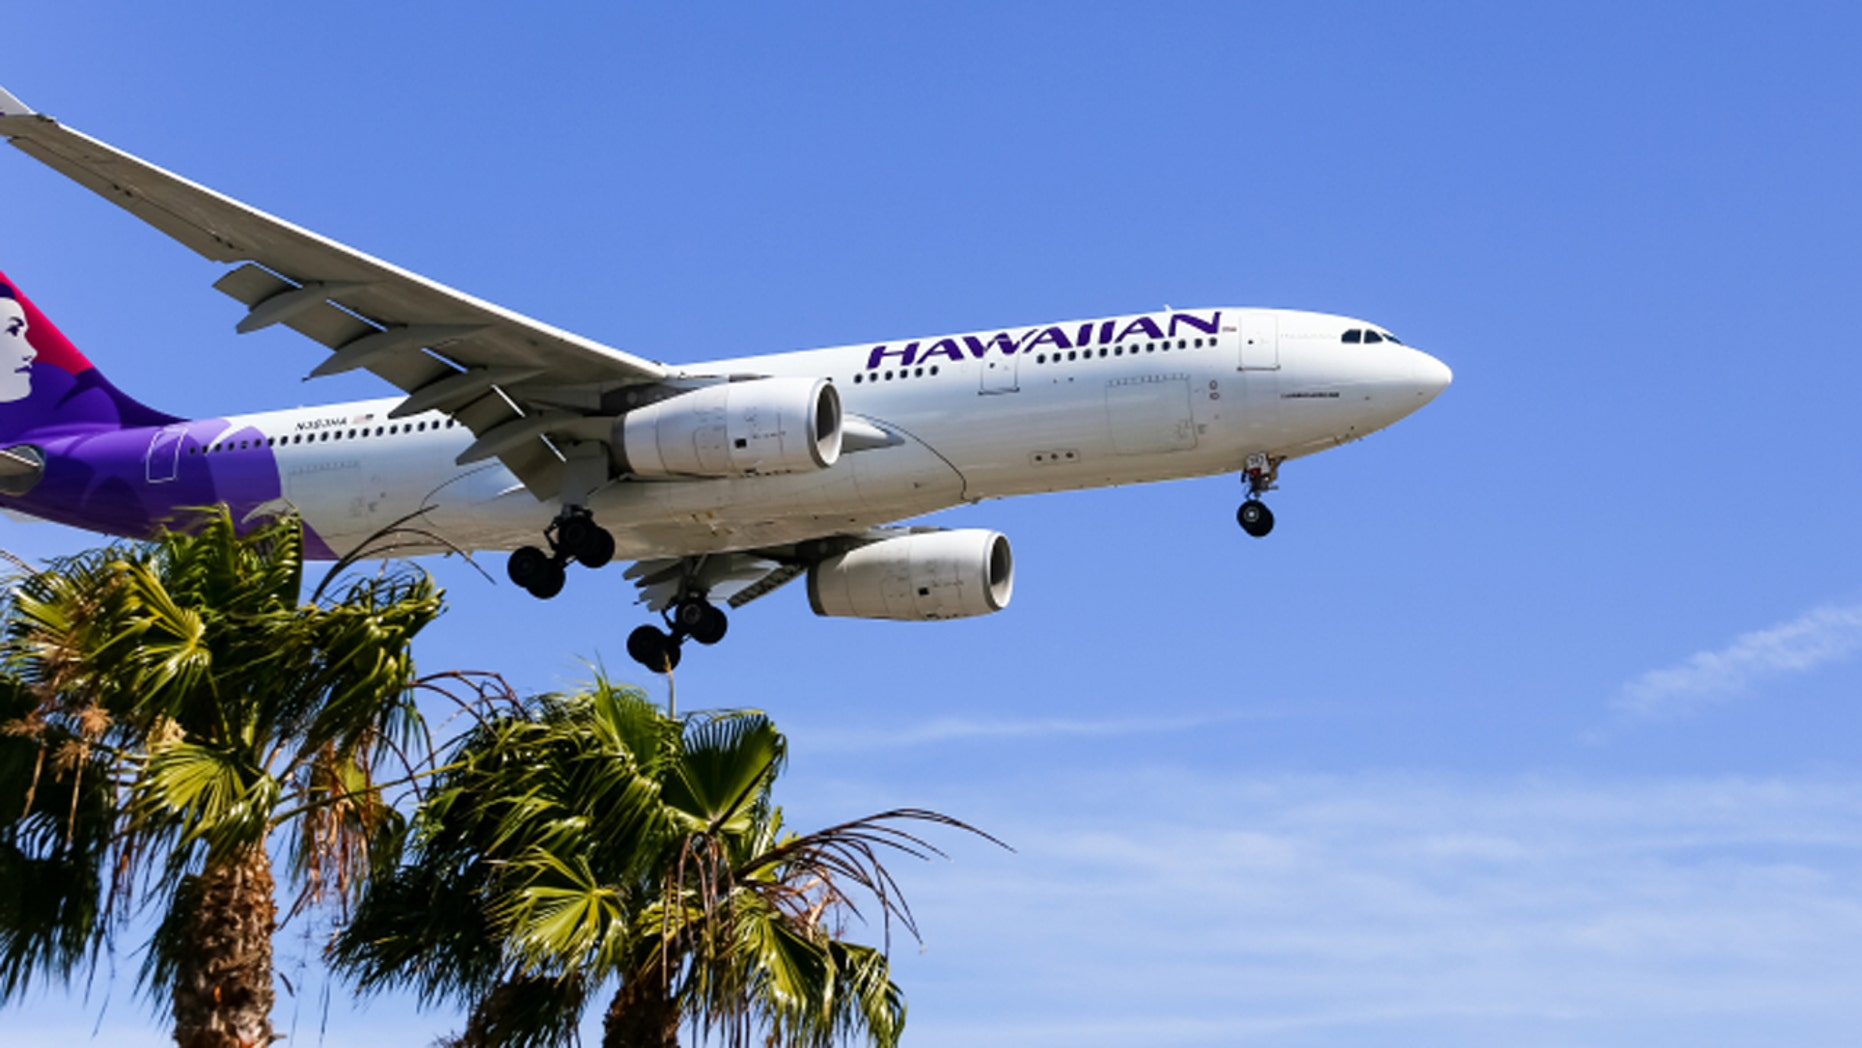 Los Angeles, USA - May 30, 2015: An airplane of Hawaiian Airlines landing at Los Angeles International Airport.